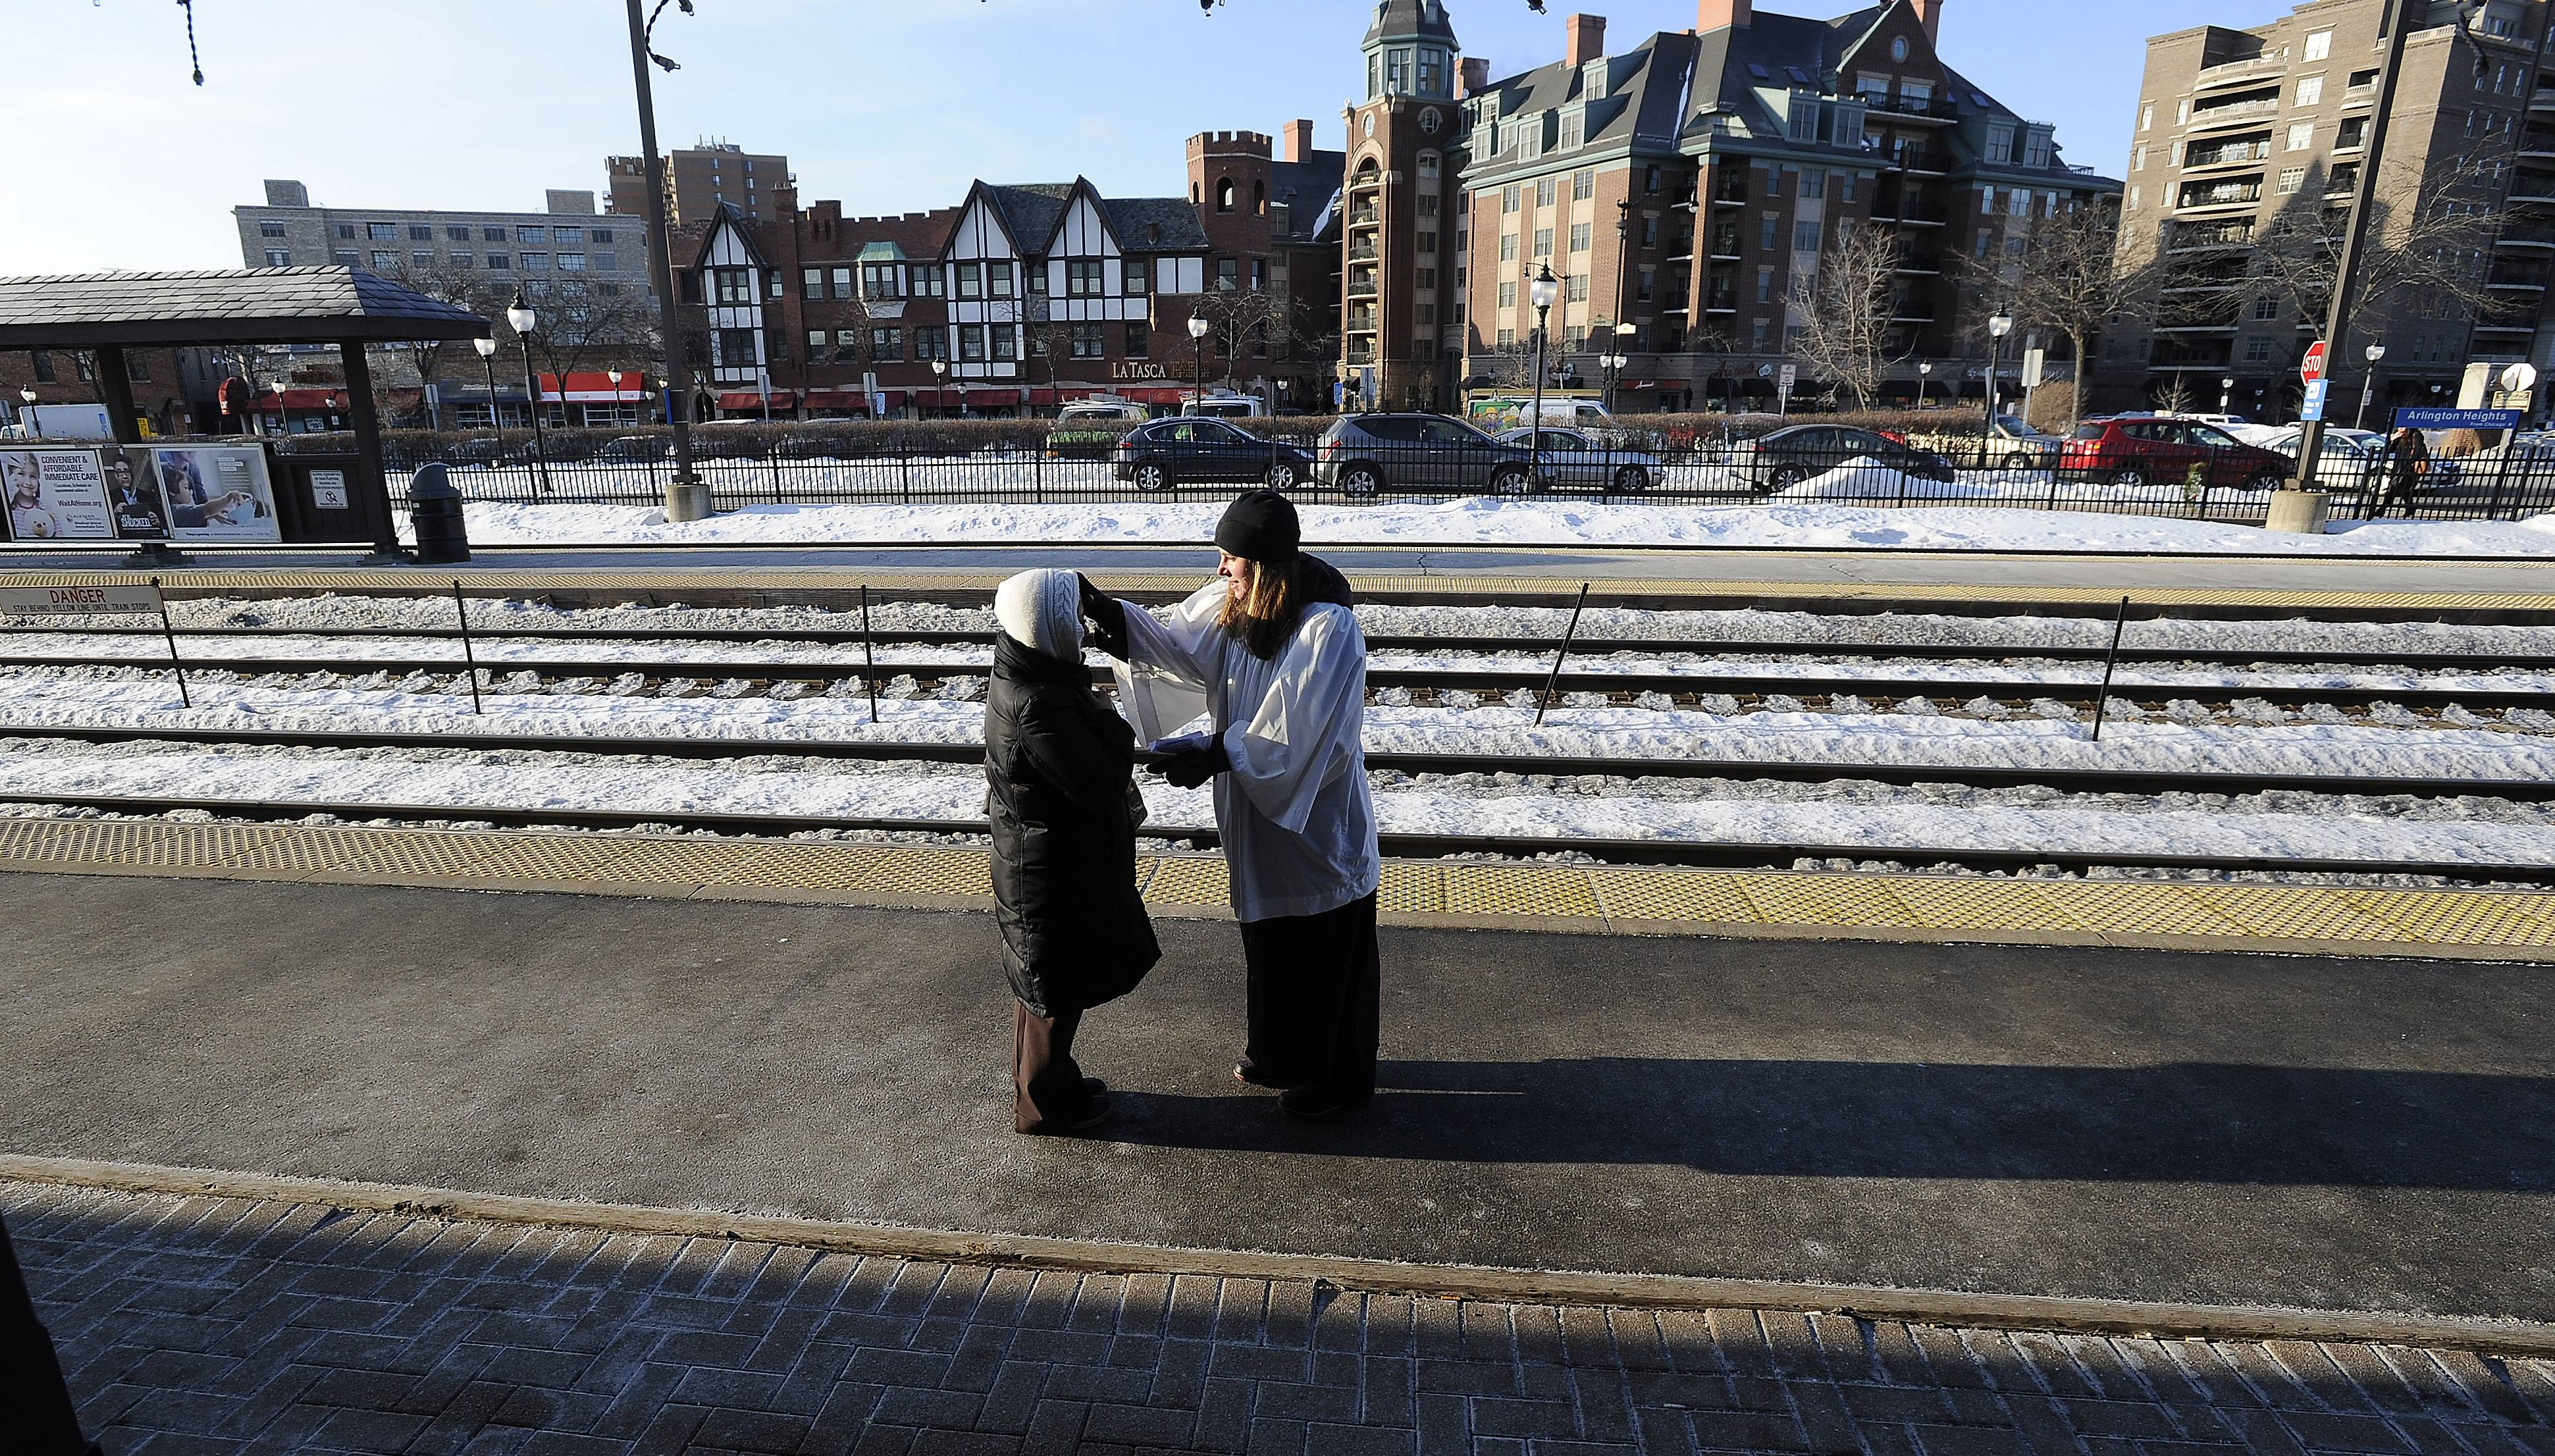 Beth Carter, 28, a member of St. Simon's Episcopal Church in Arlington Heights, gives ashes to a commuter Wednesday at the Arlington Heights Metra station.